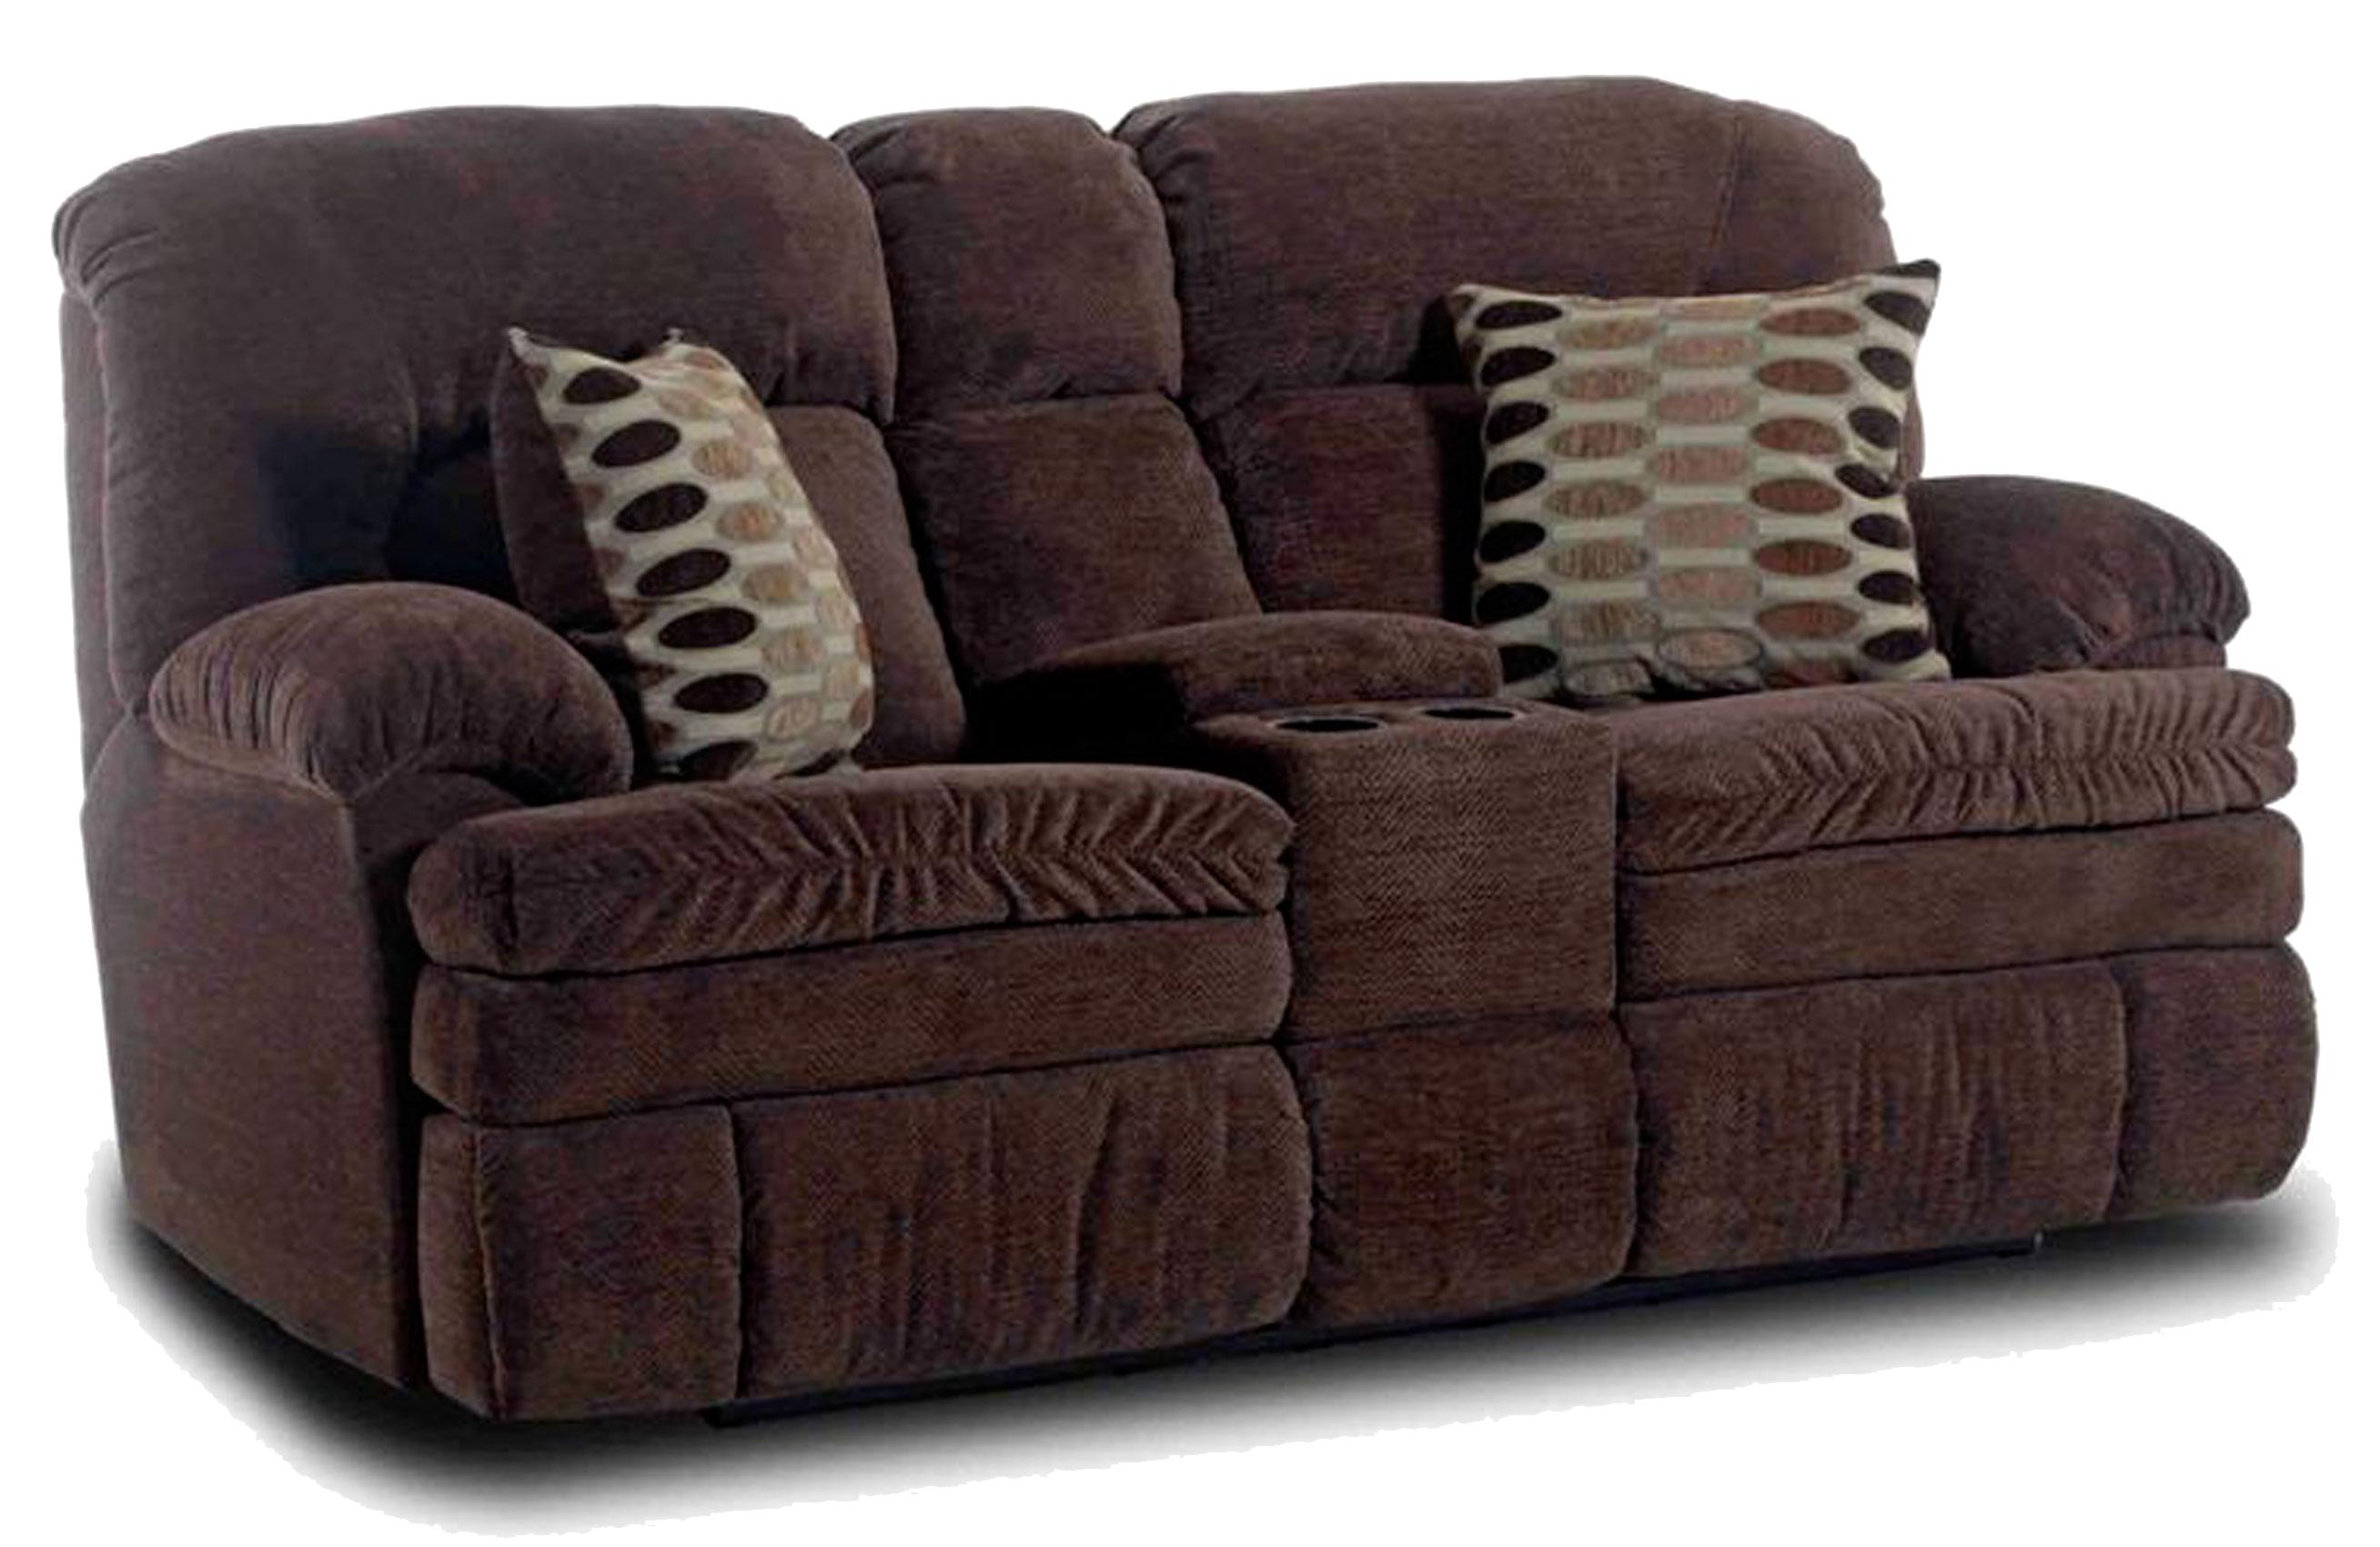 HomeStretch 103 Chocolate Series Console Loveseat - Item Number: 103-22-22